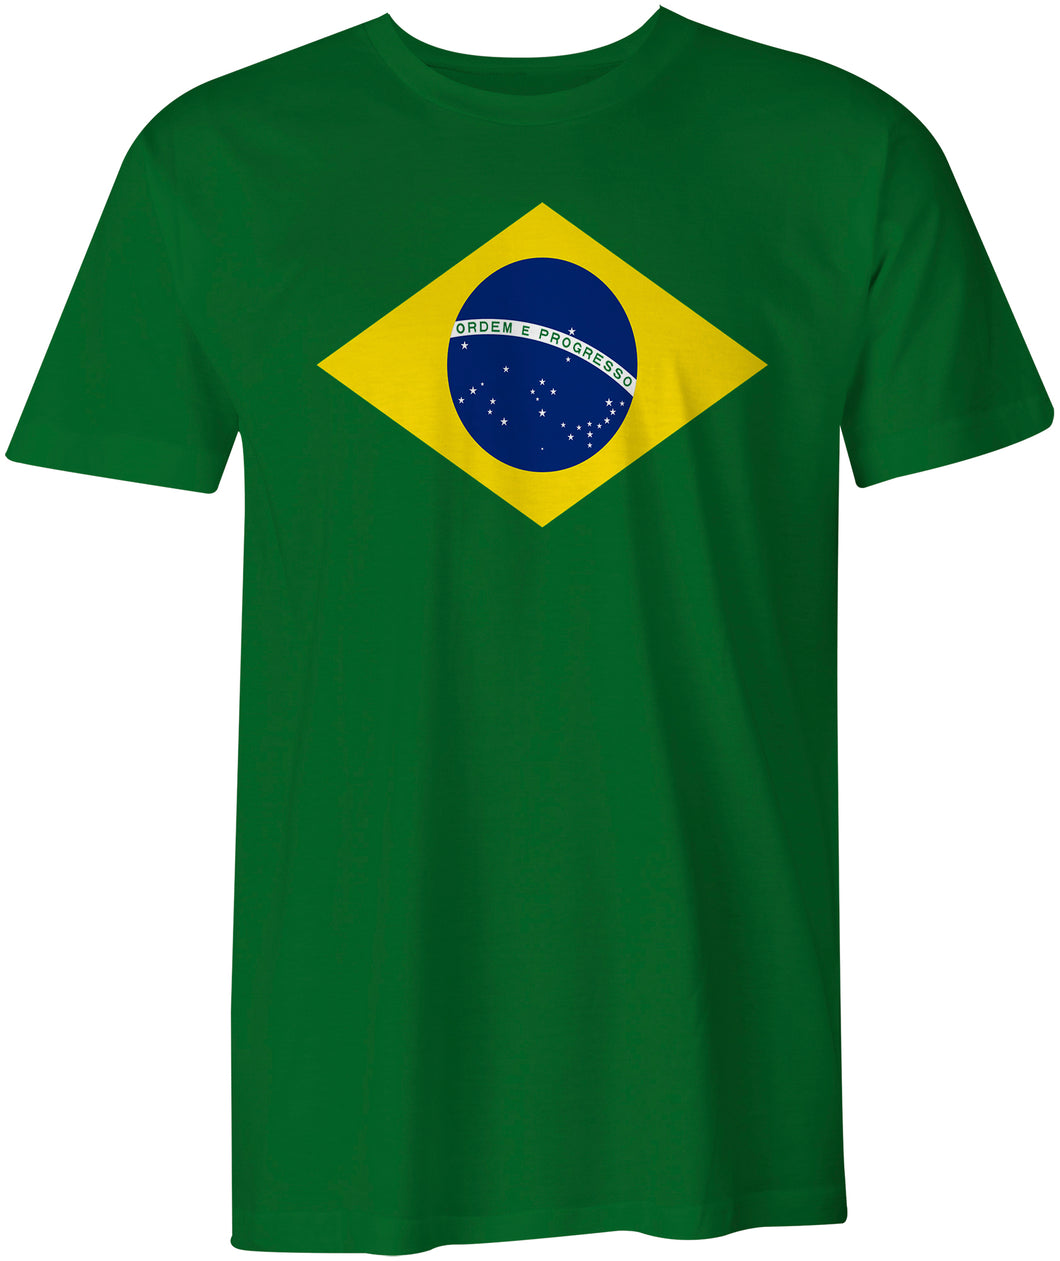 Brazil National Flag Bandeira do Brasil, Brazilian Green Unisex  T-shirt